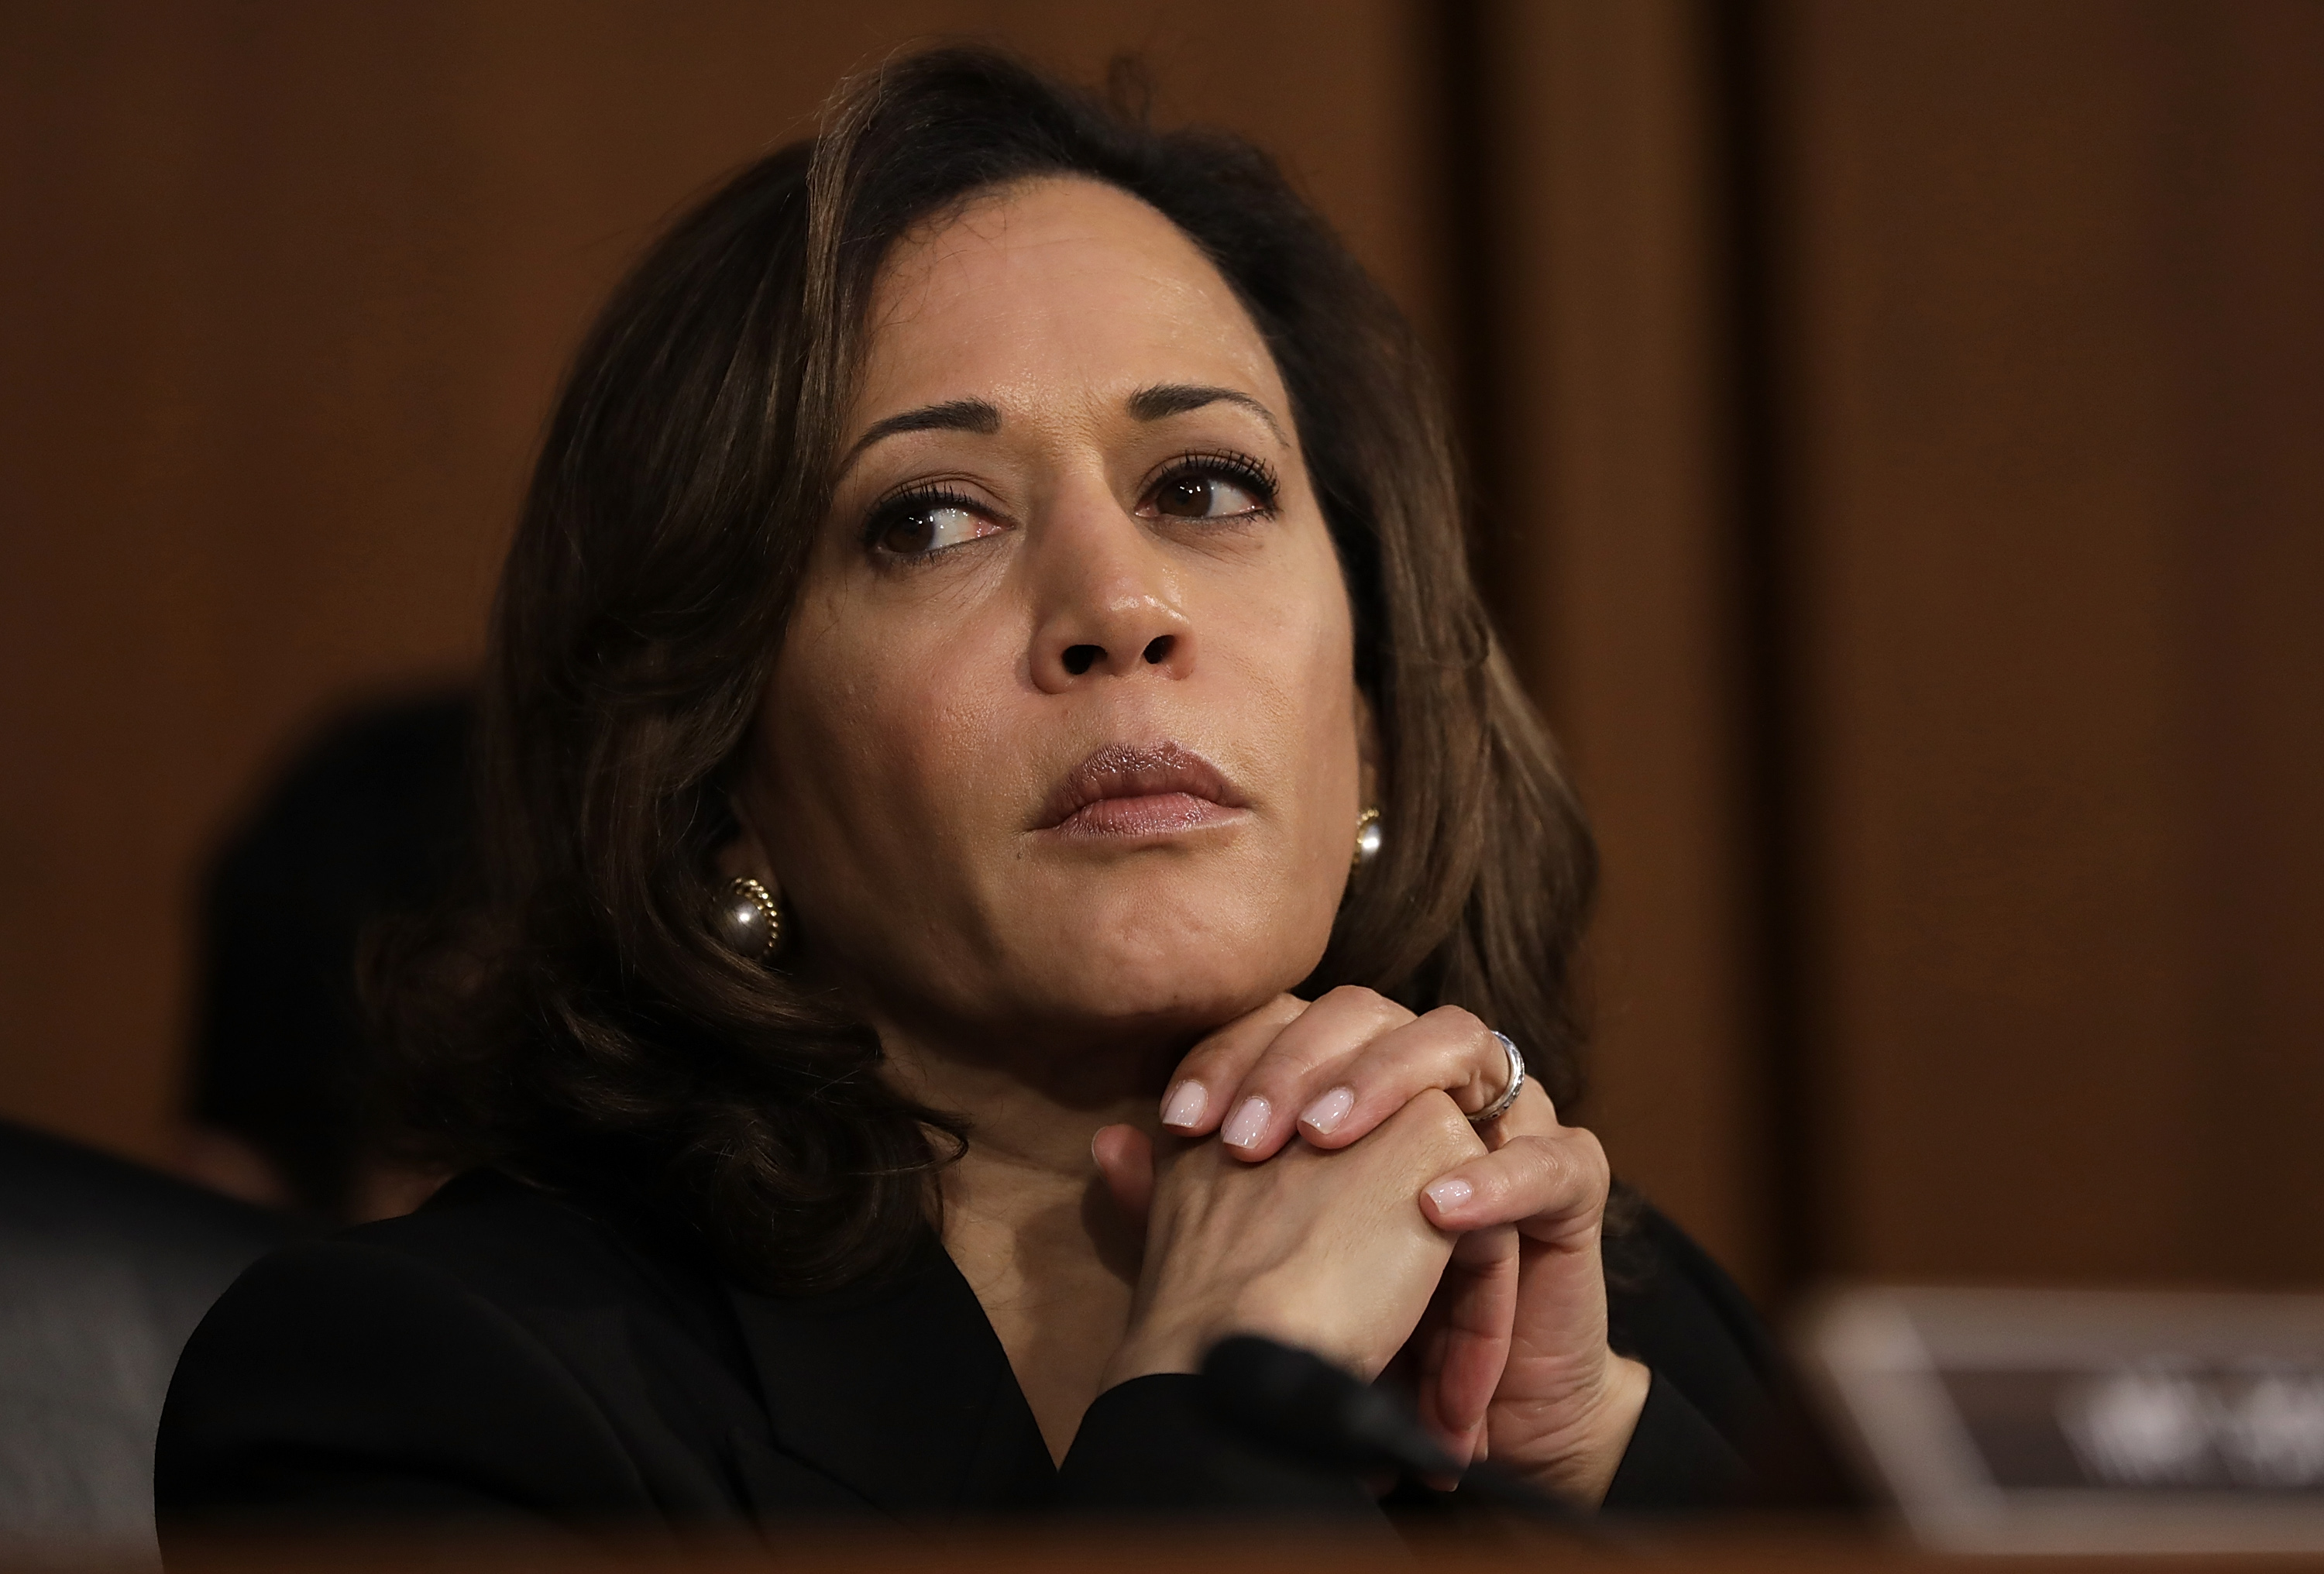 WaPo: Crime Lab Scandal Rocked Harris's Term as San Francisco DA